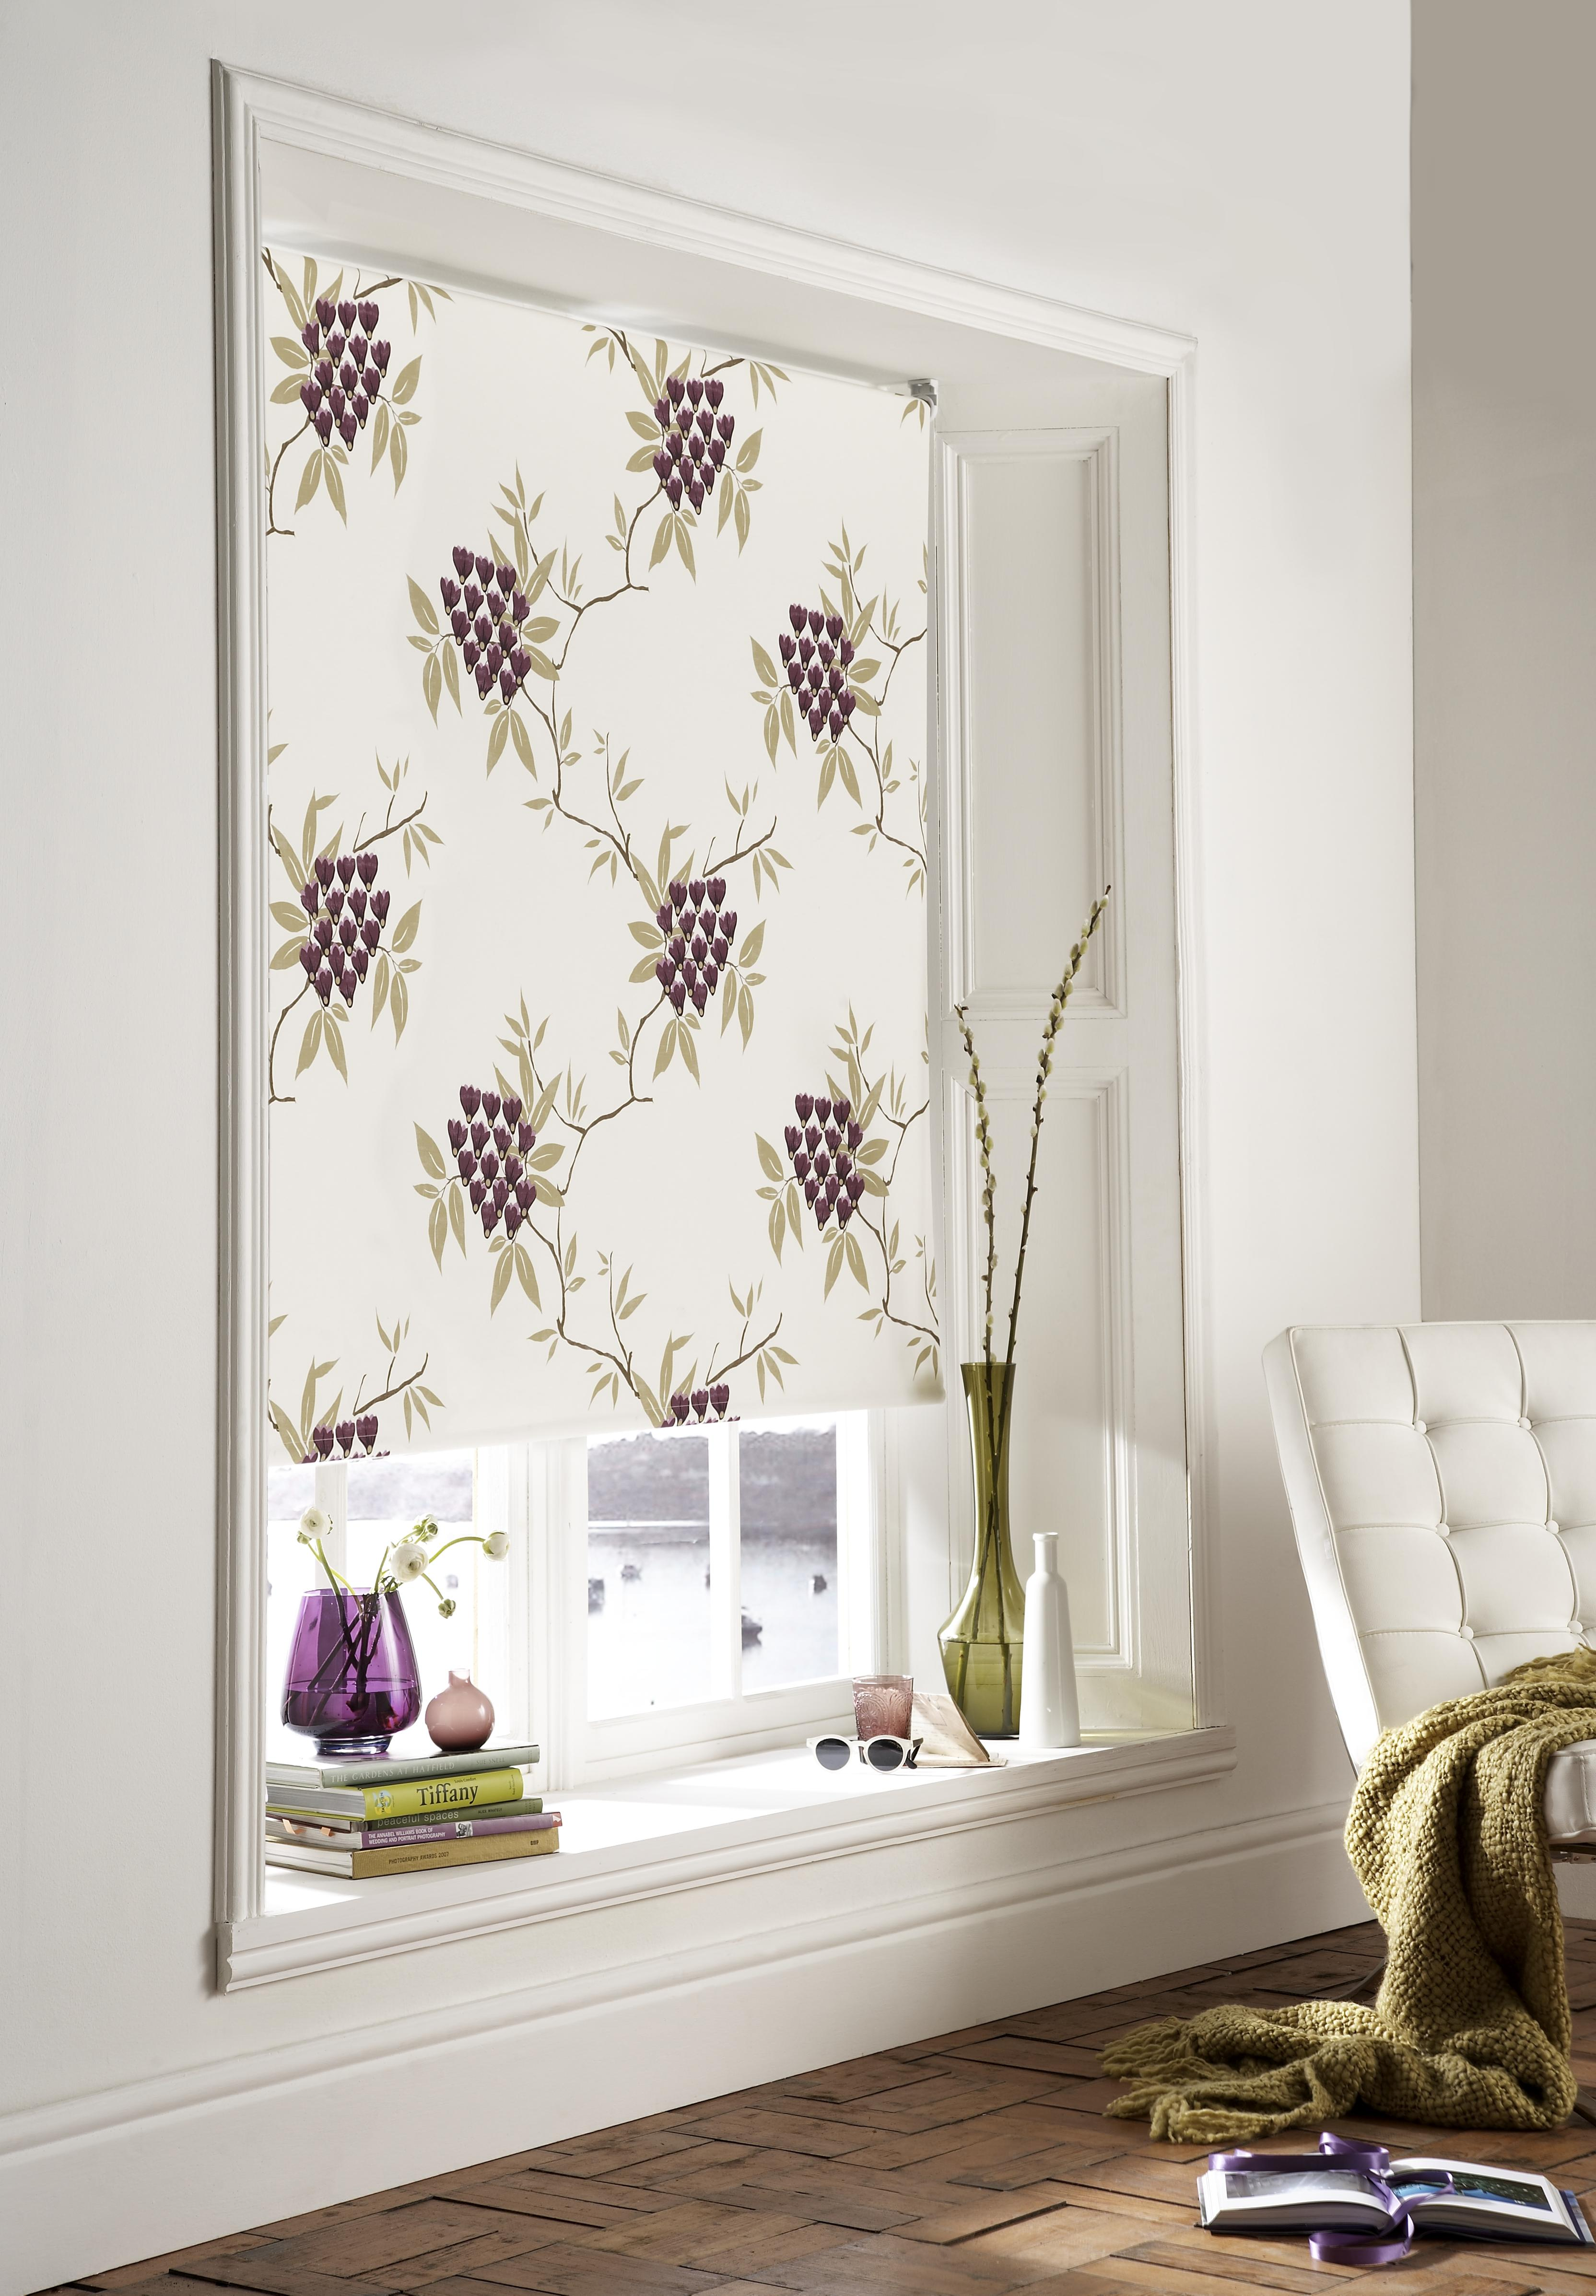 Roller Blinds With Designs : Blackout blinds the unsung heroes of interior design